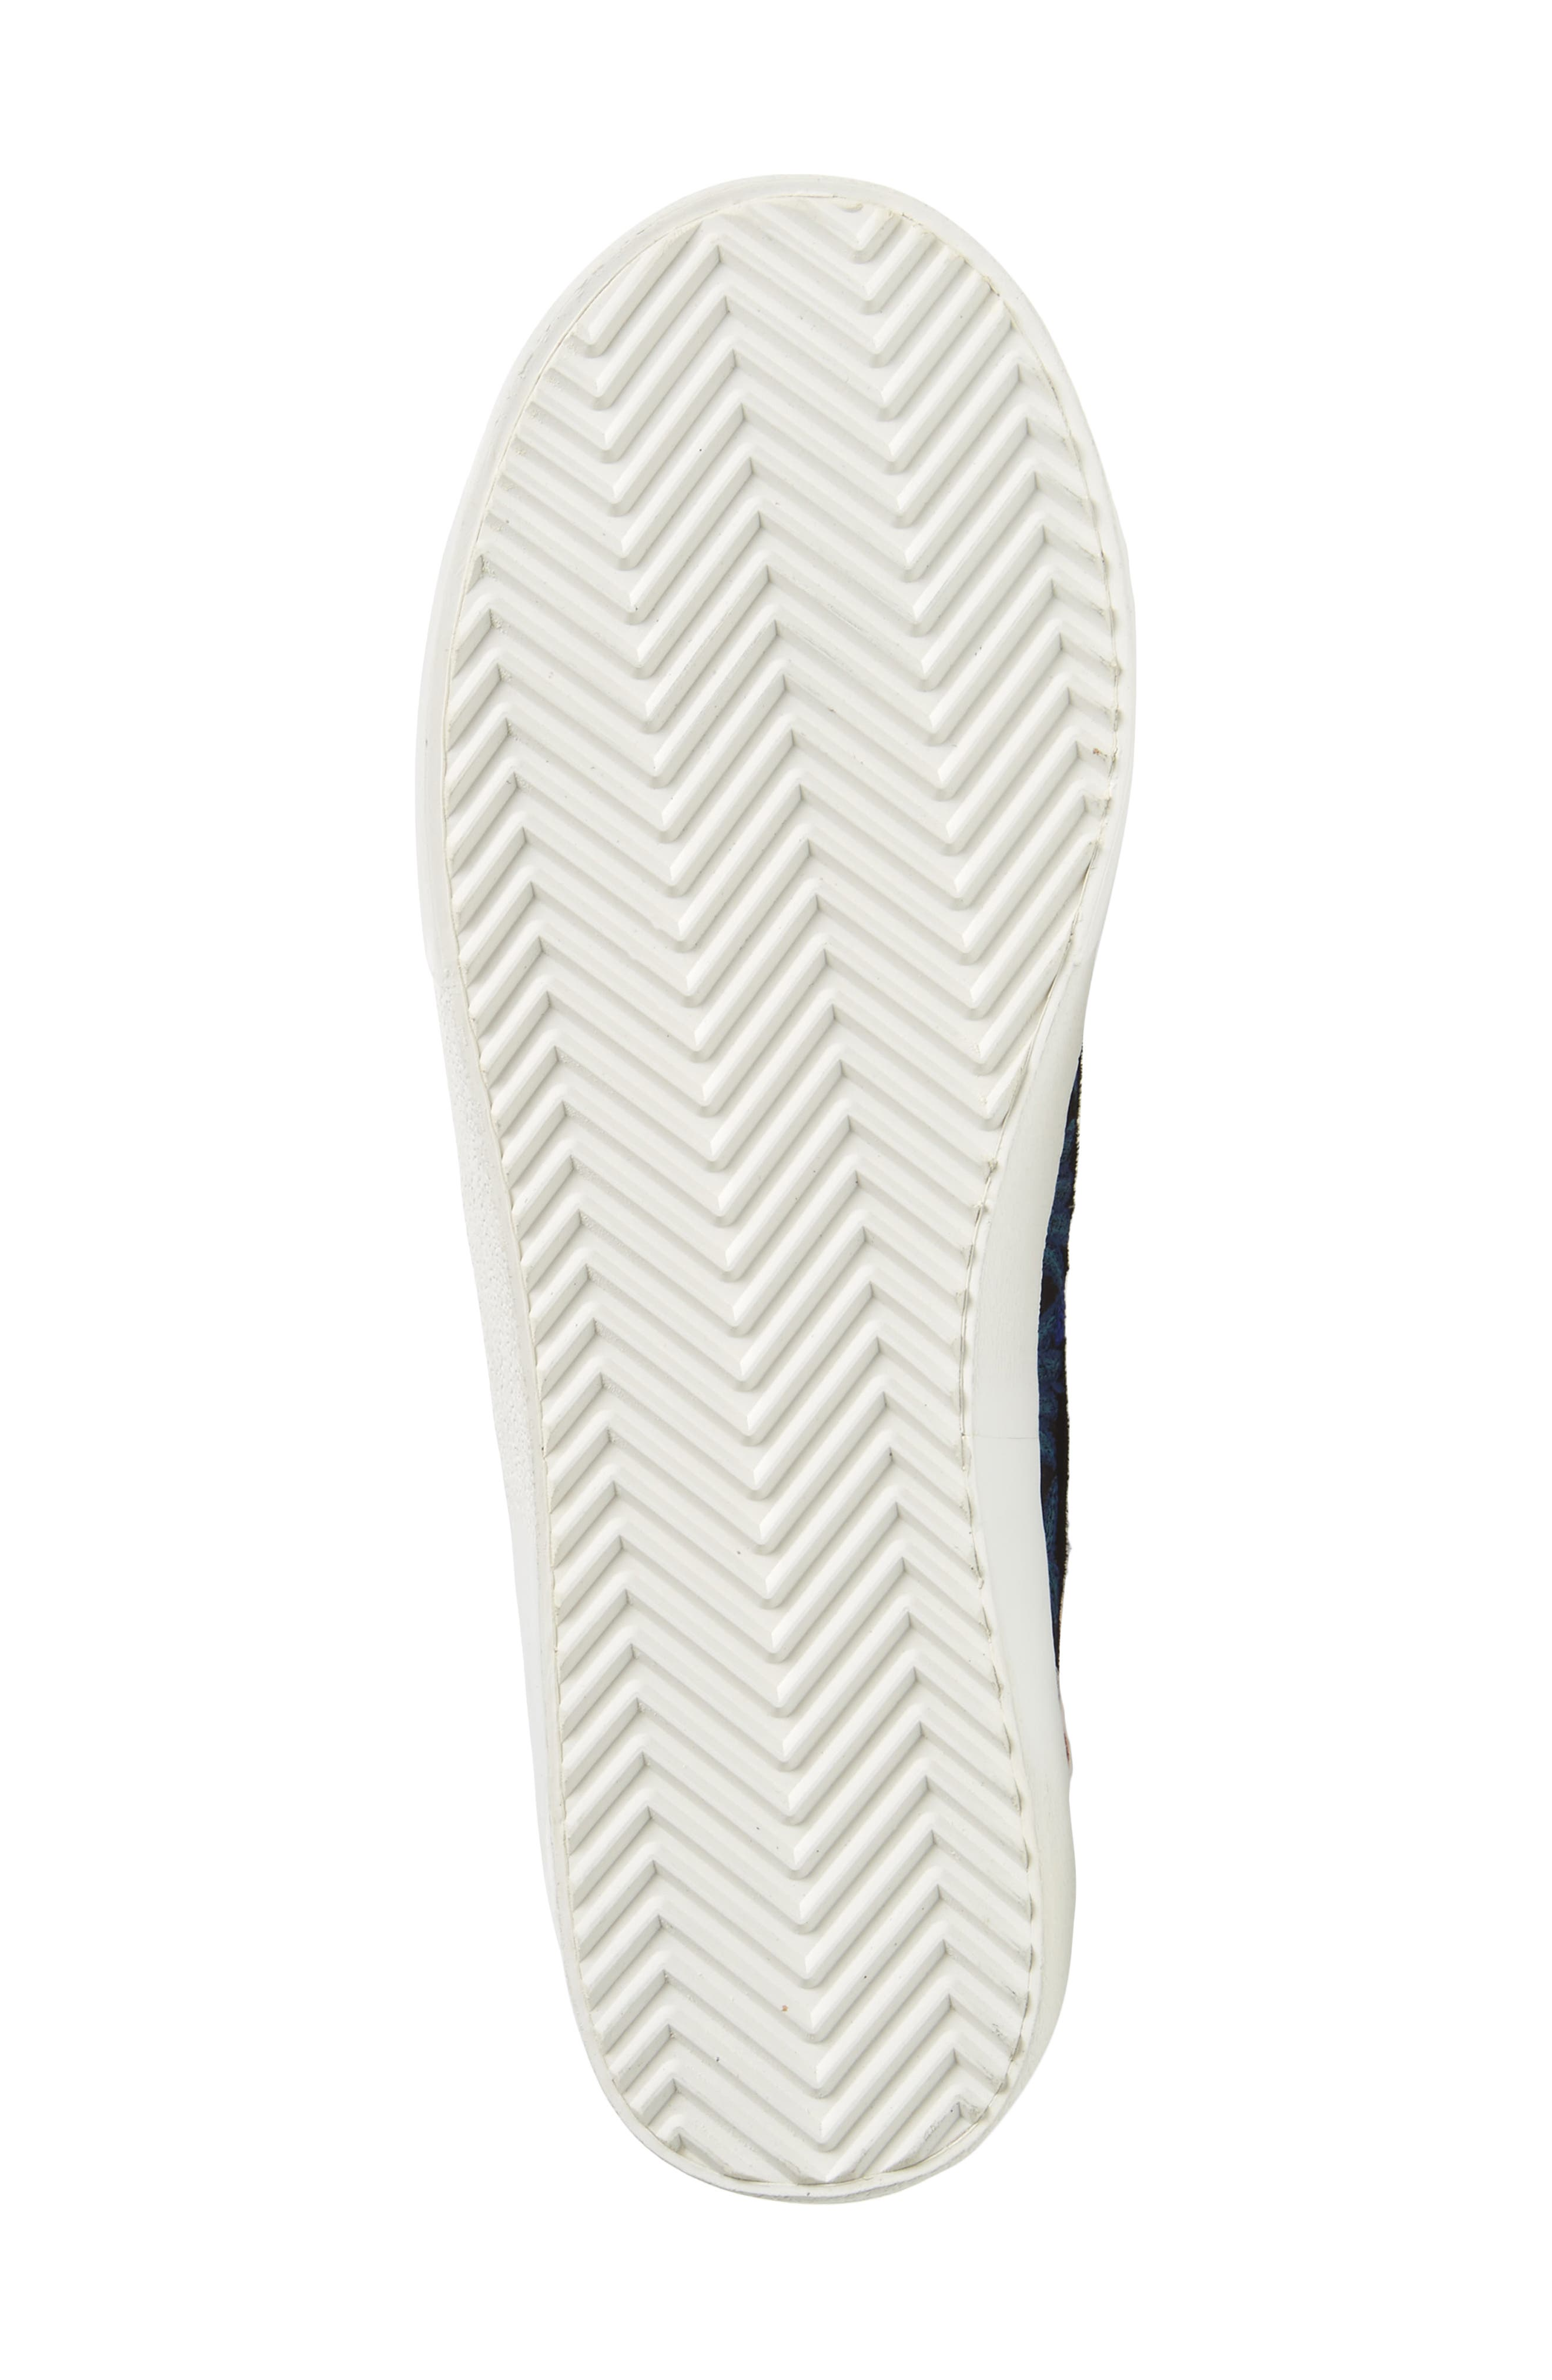 Zaina Embroidered Sneaker,                             Alternate thumbnail 6, color,                             004